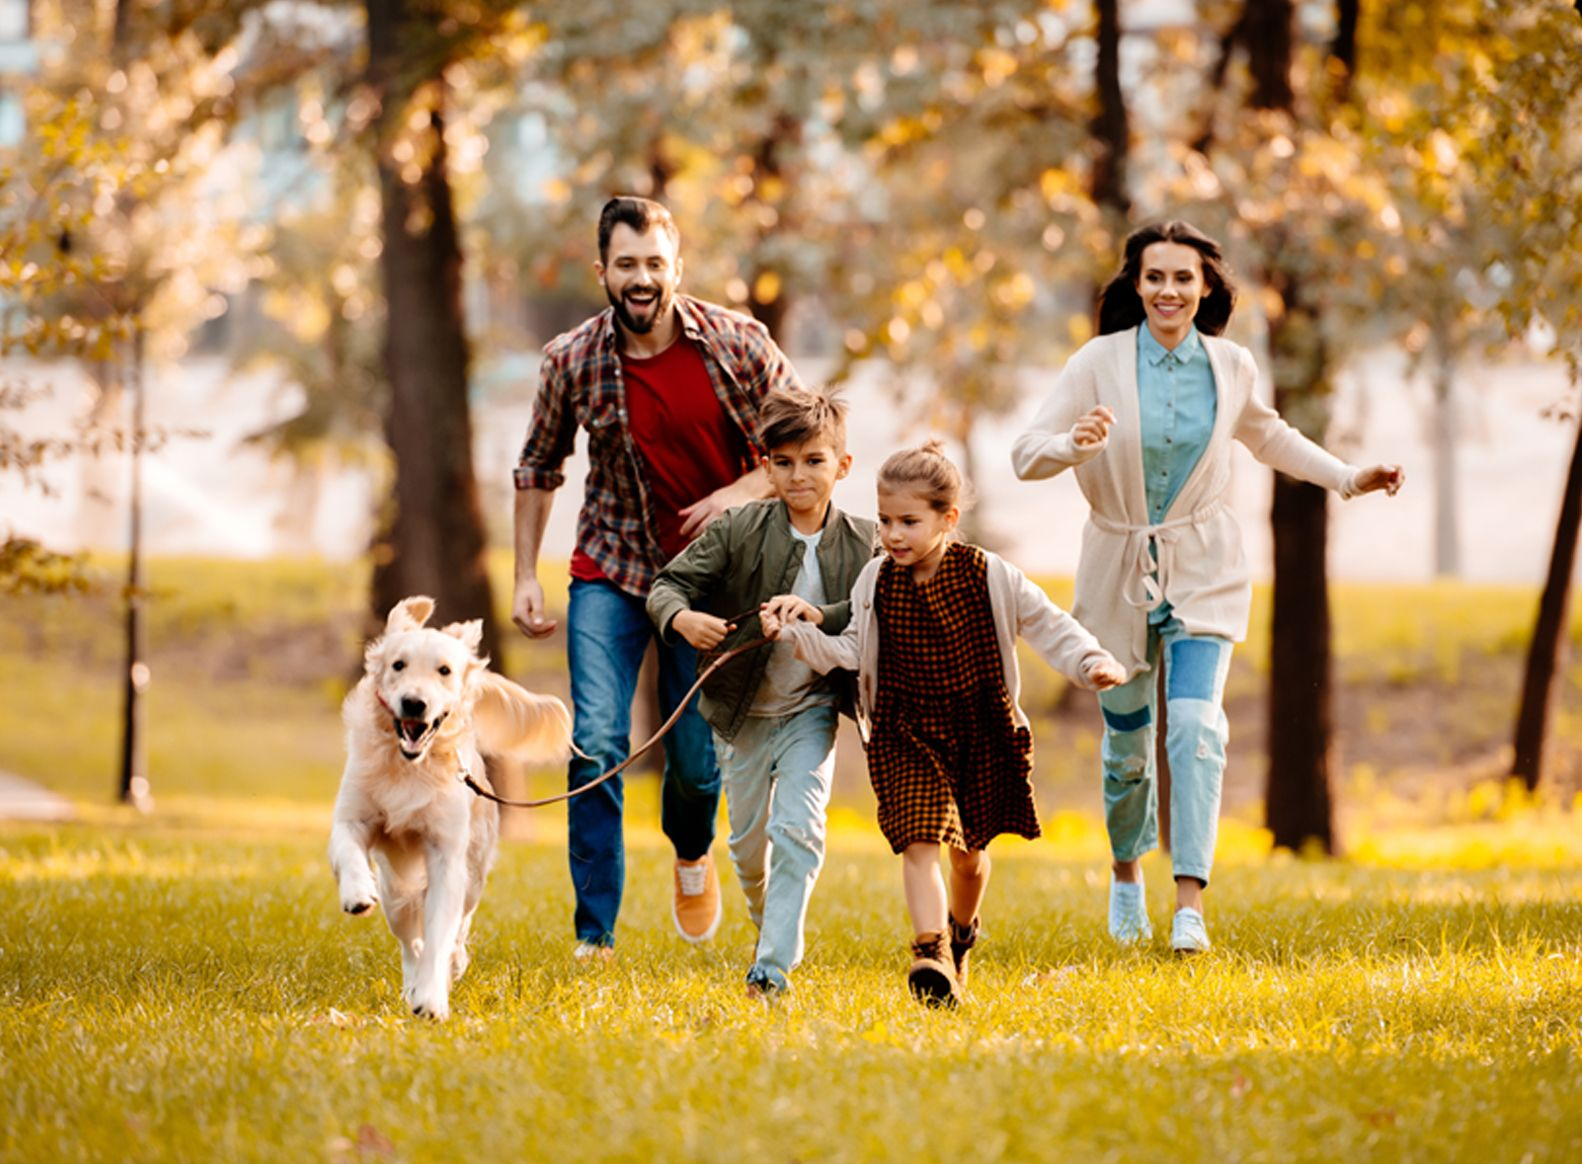 Family and their dog running